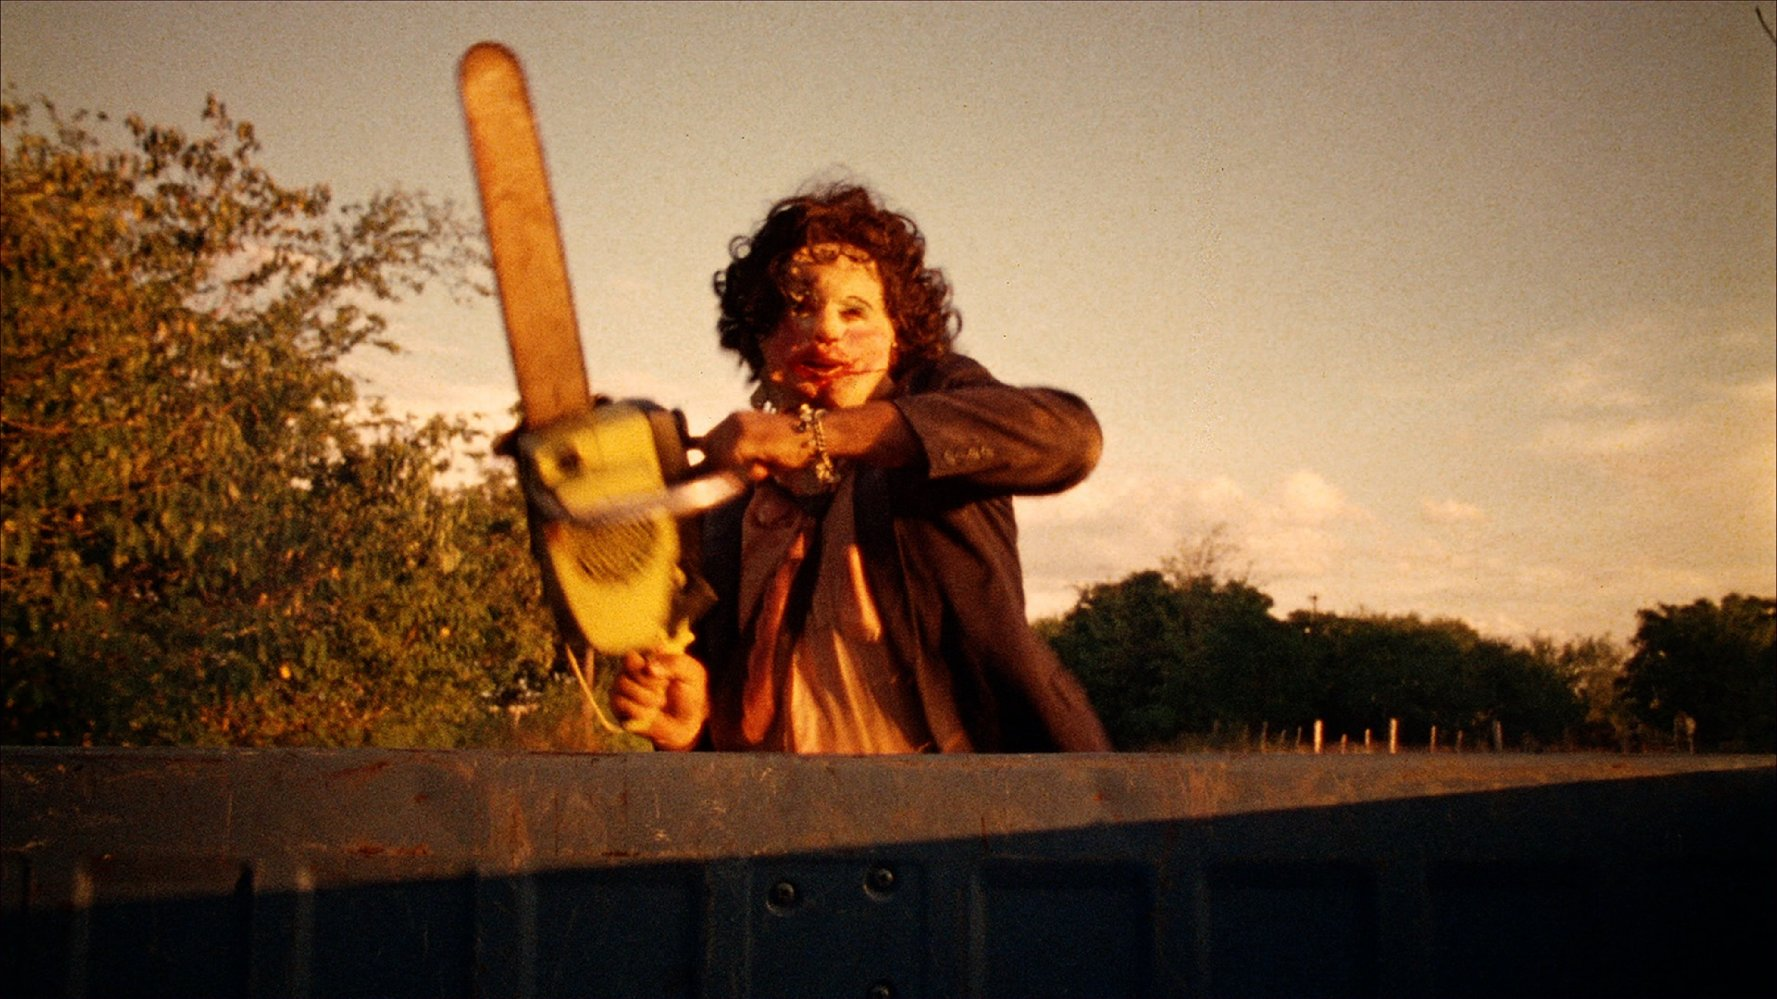 Tobe Hooper Hated Us: The Texas Chain Saw Massacre (1974)